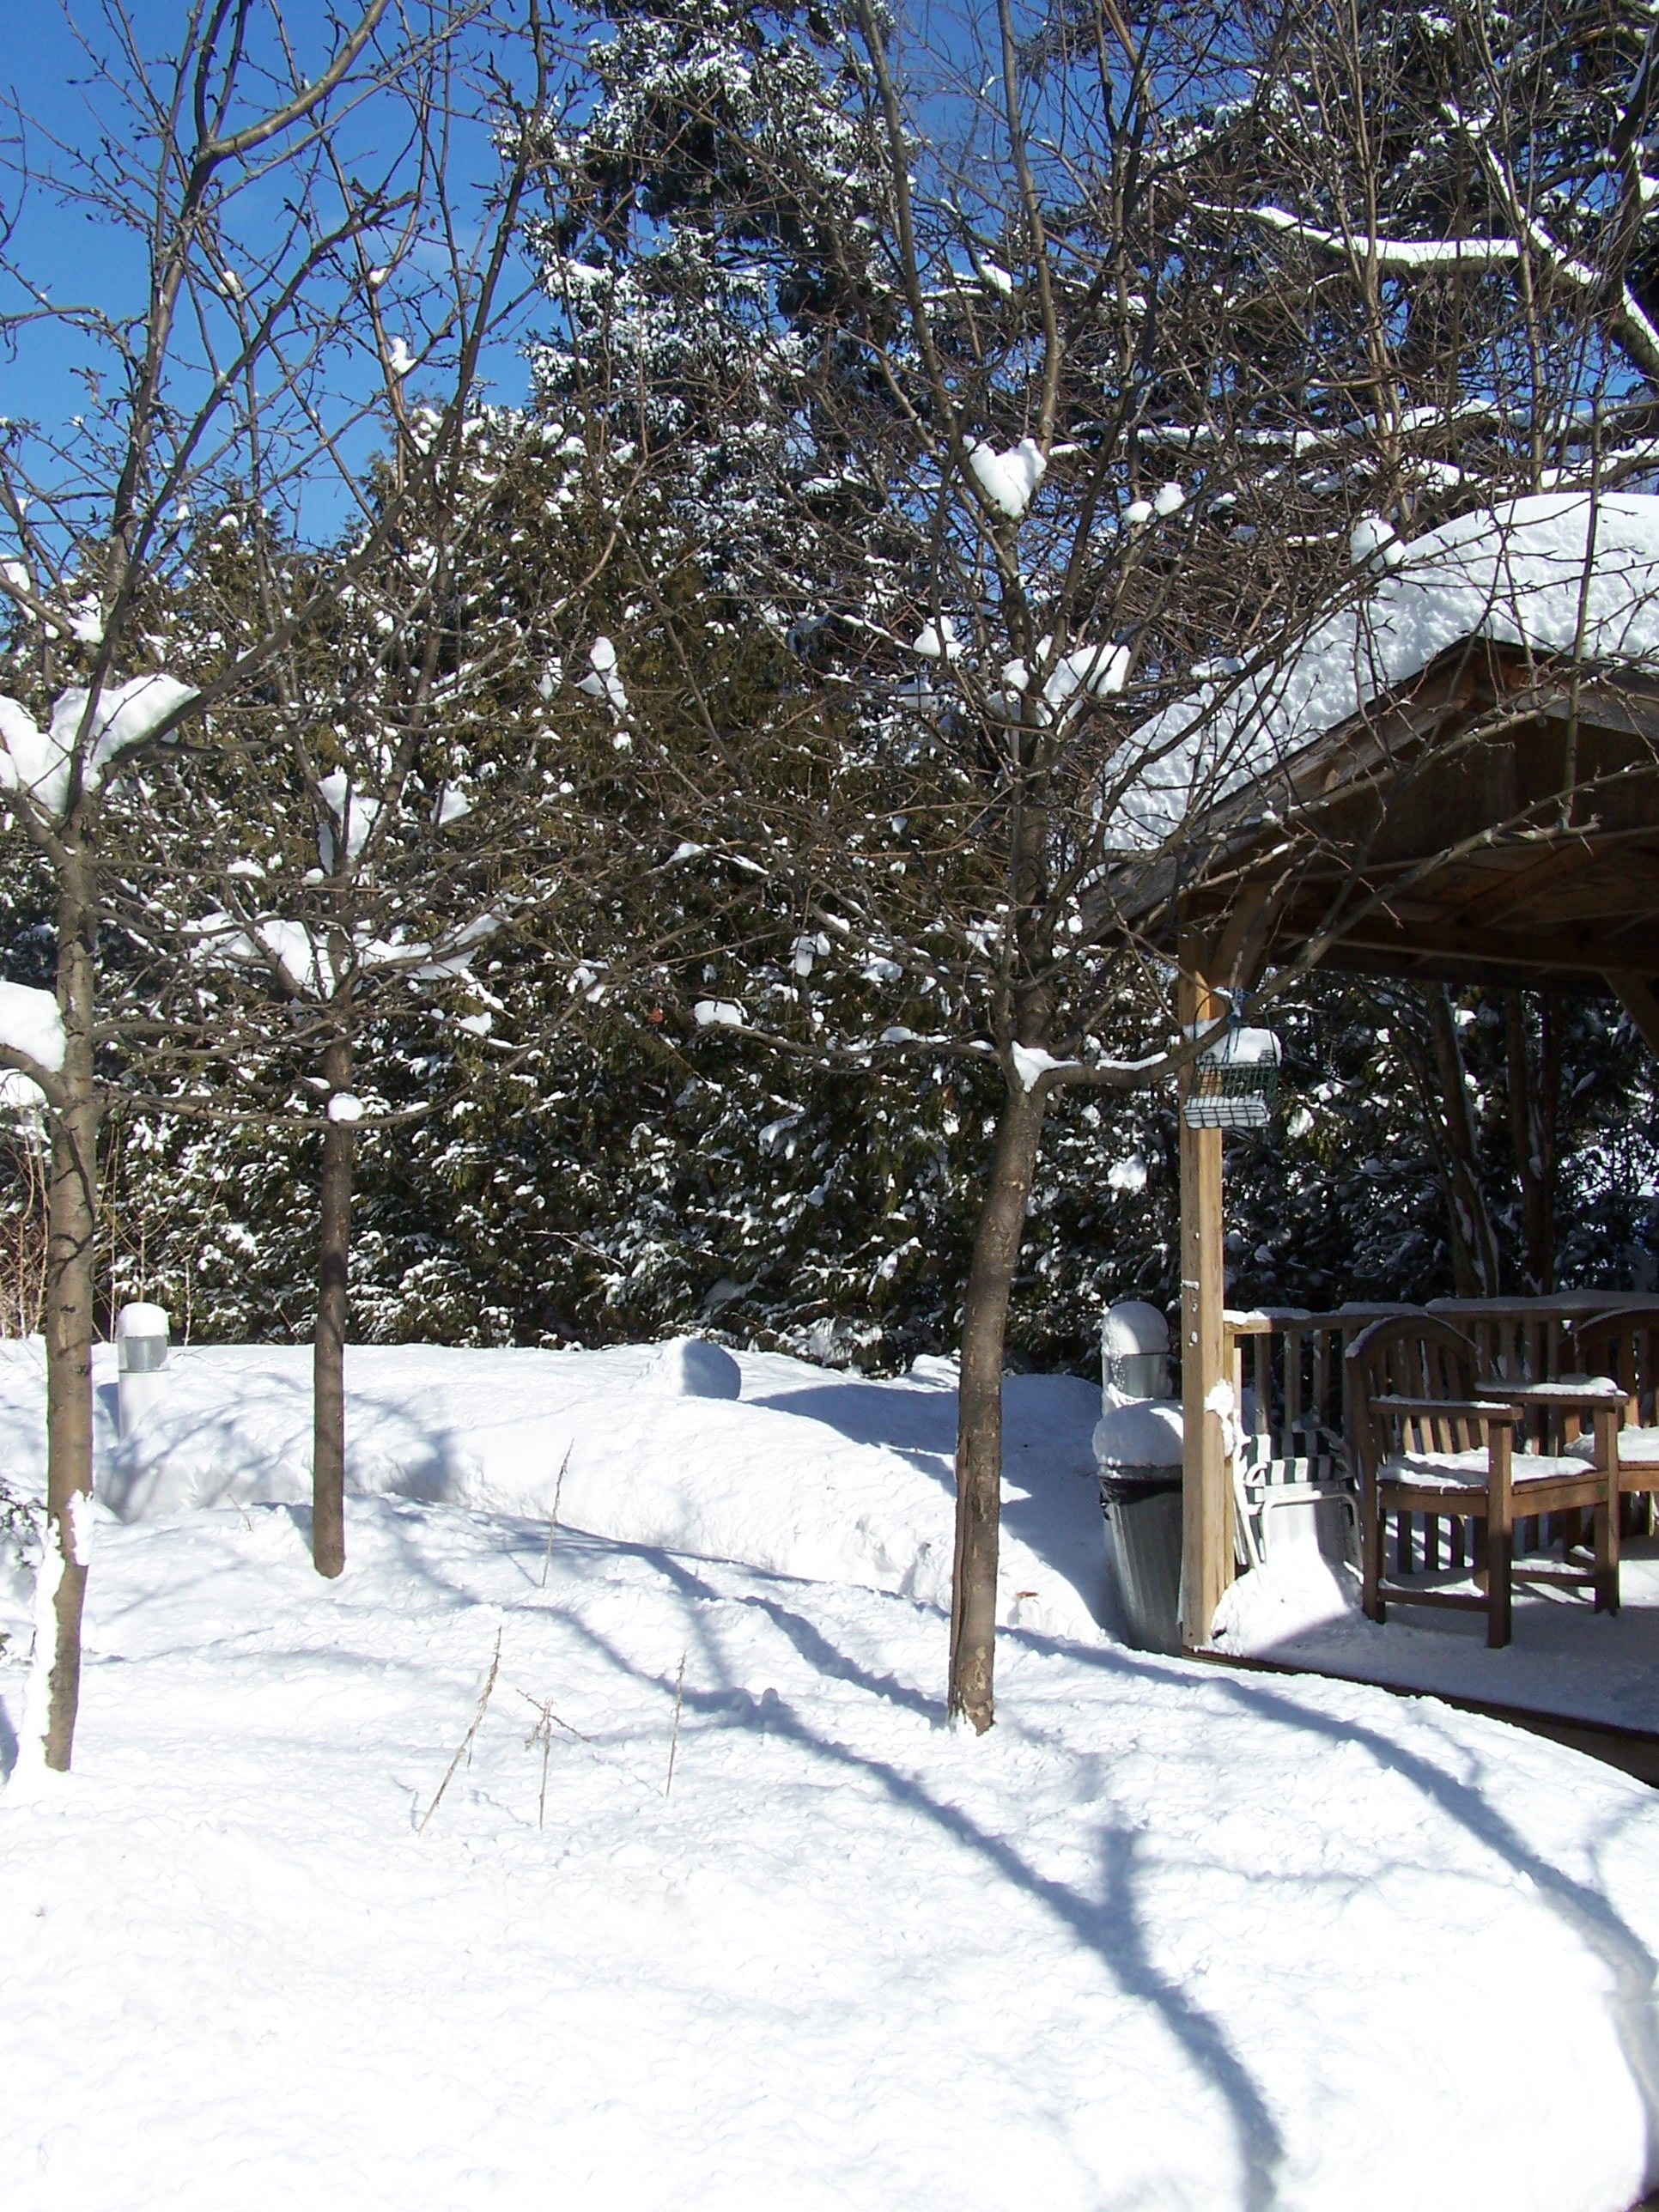 Winter view of Gazebo